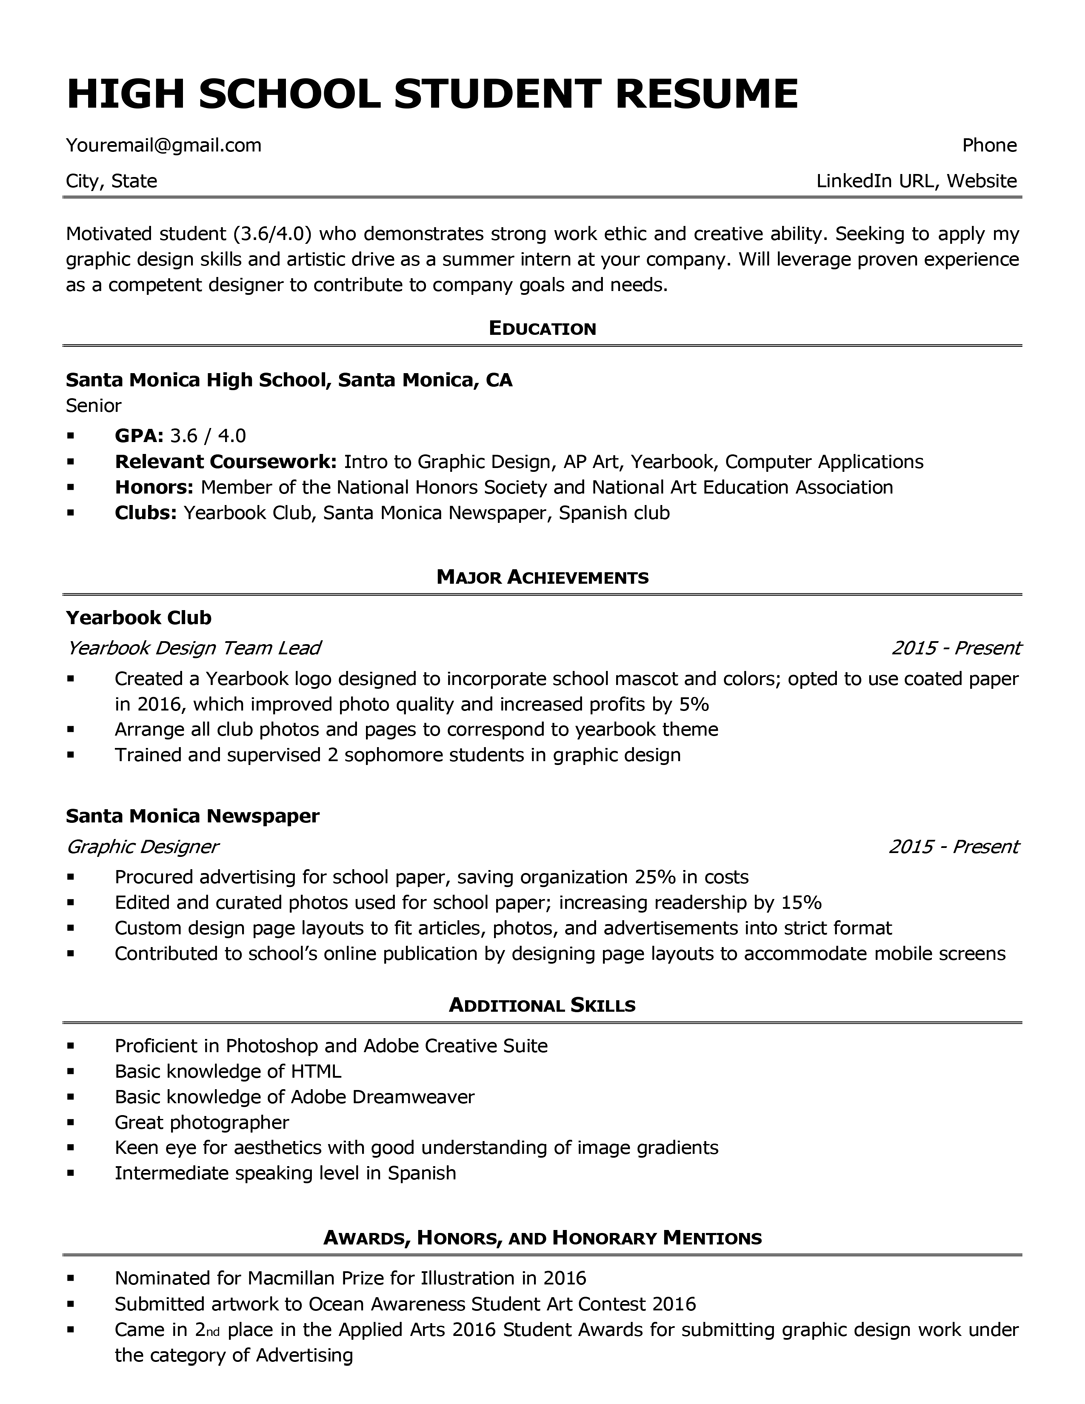 High School Resume Template Amp Writing Tips